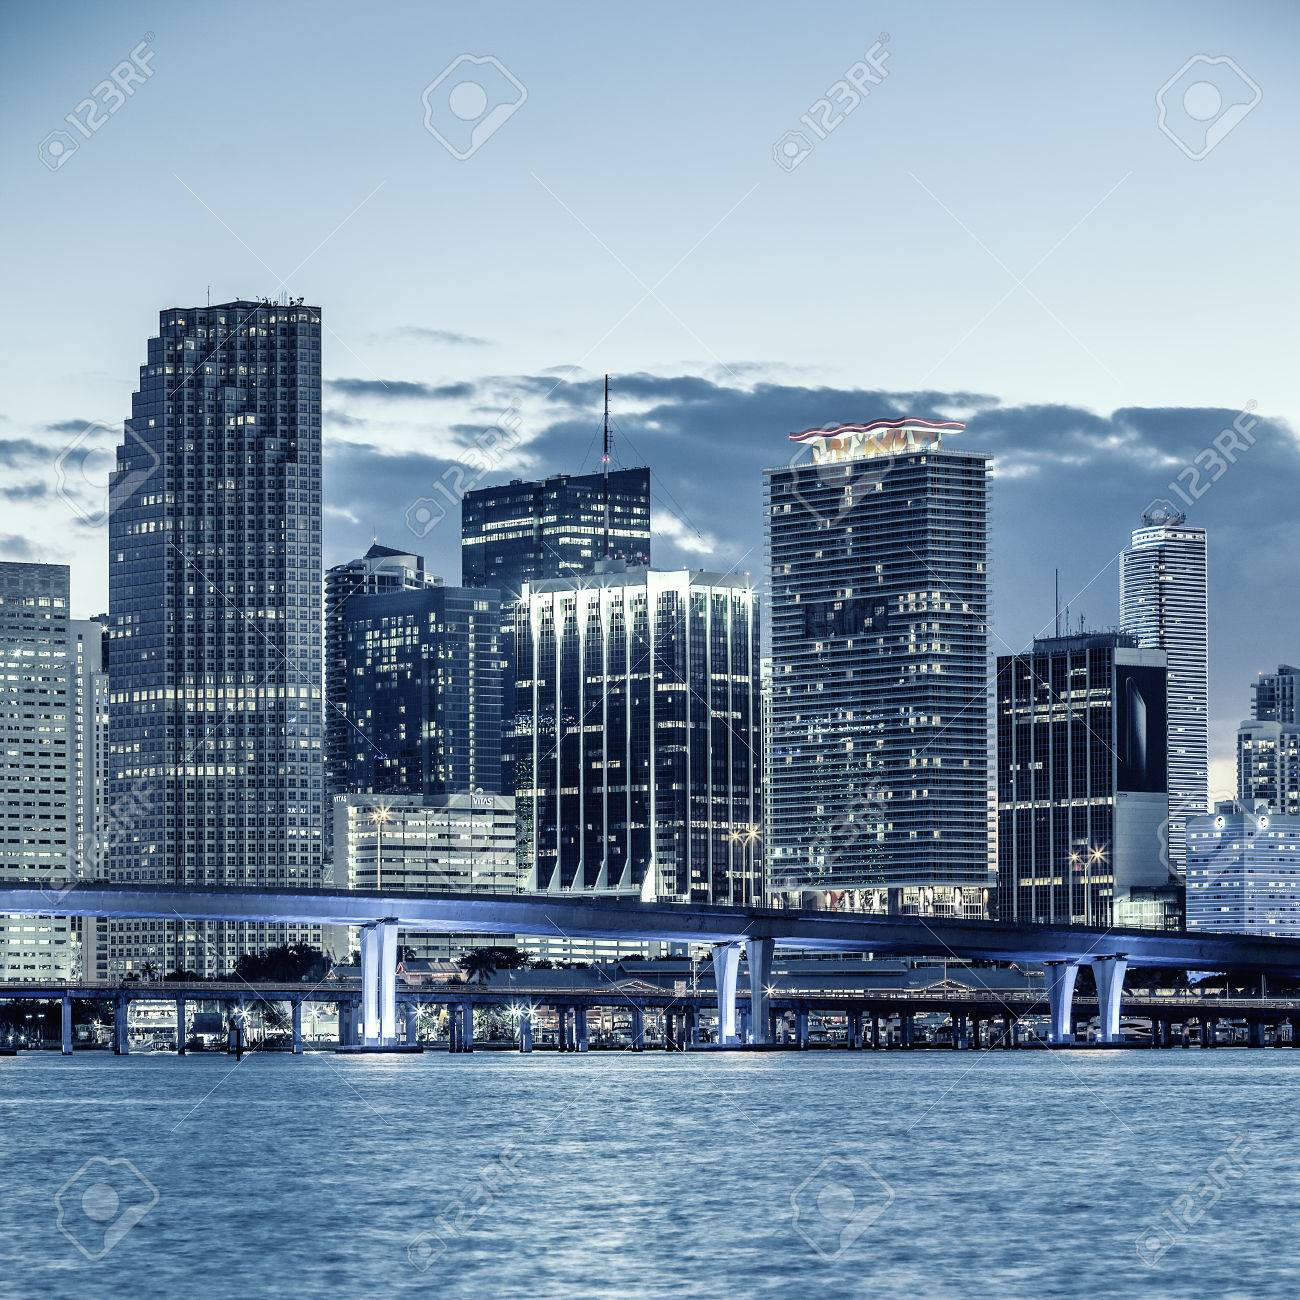 CIty of Miami Florida, business and residential buildings and bridge on Biscayne Bay - 28086625